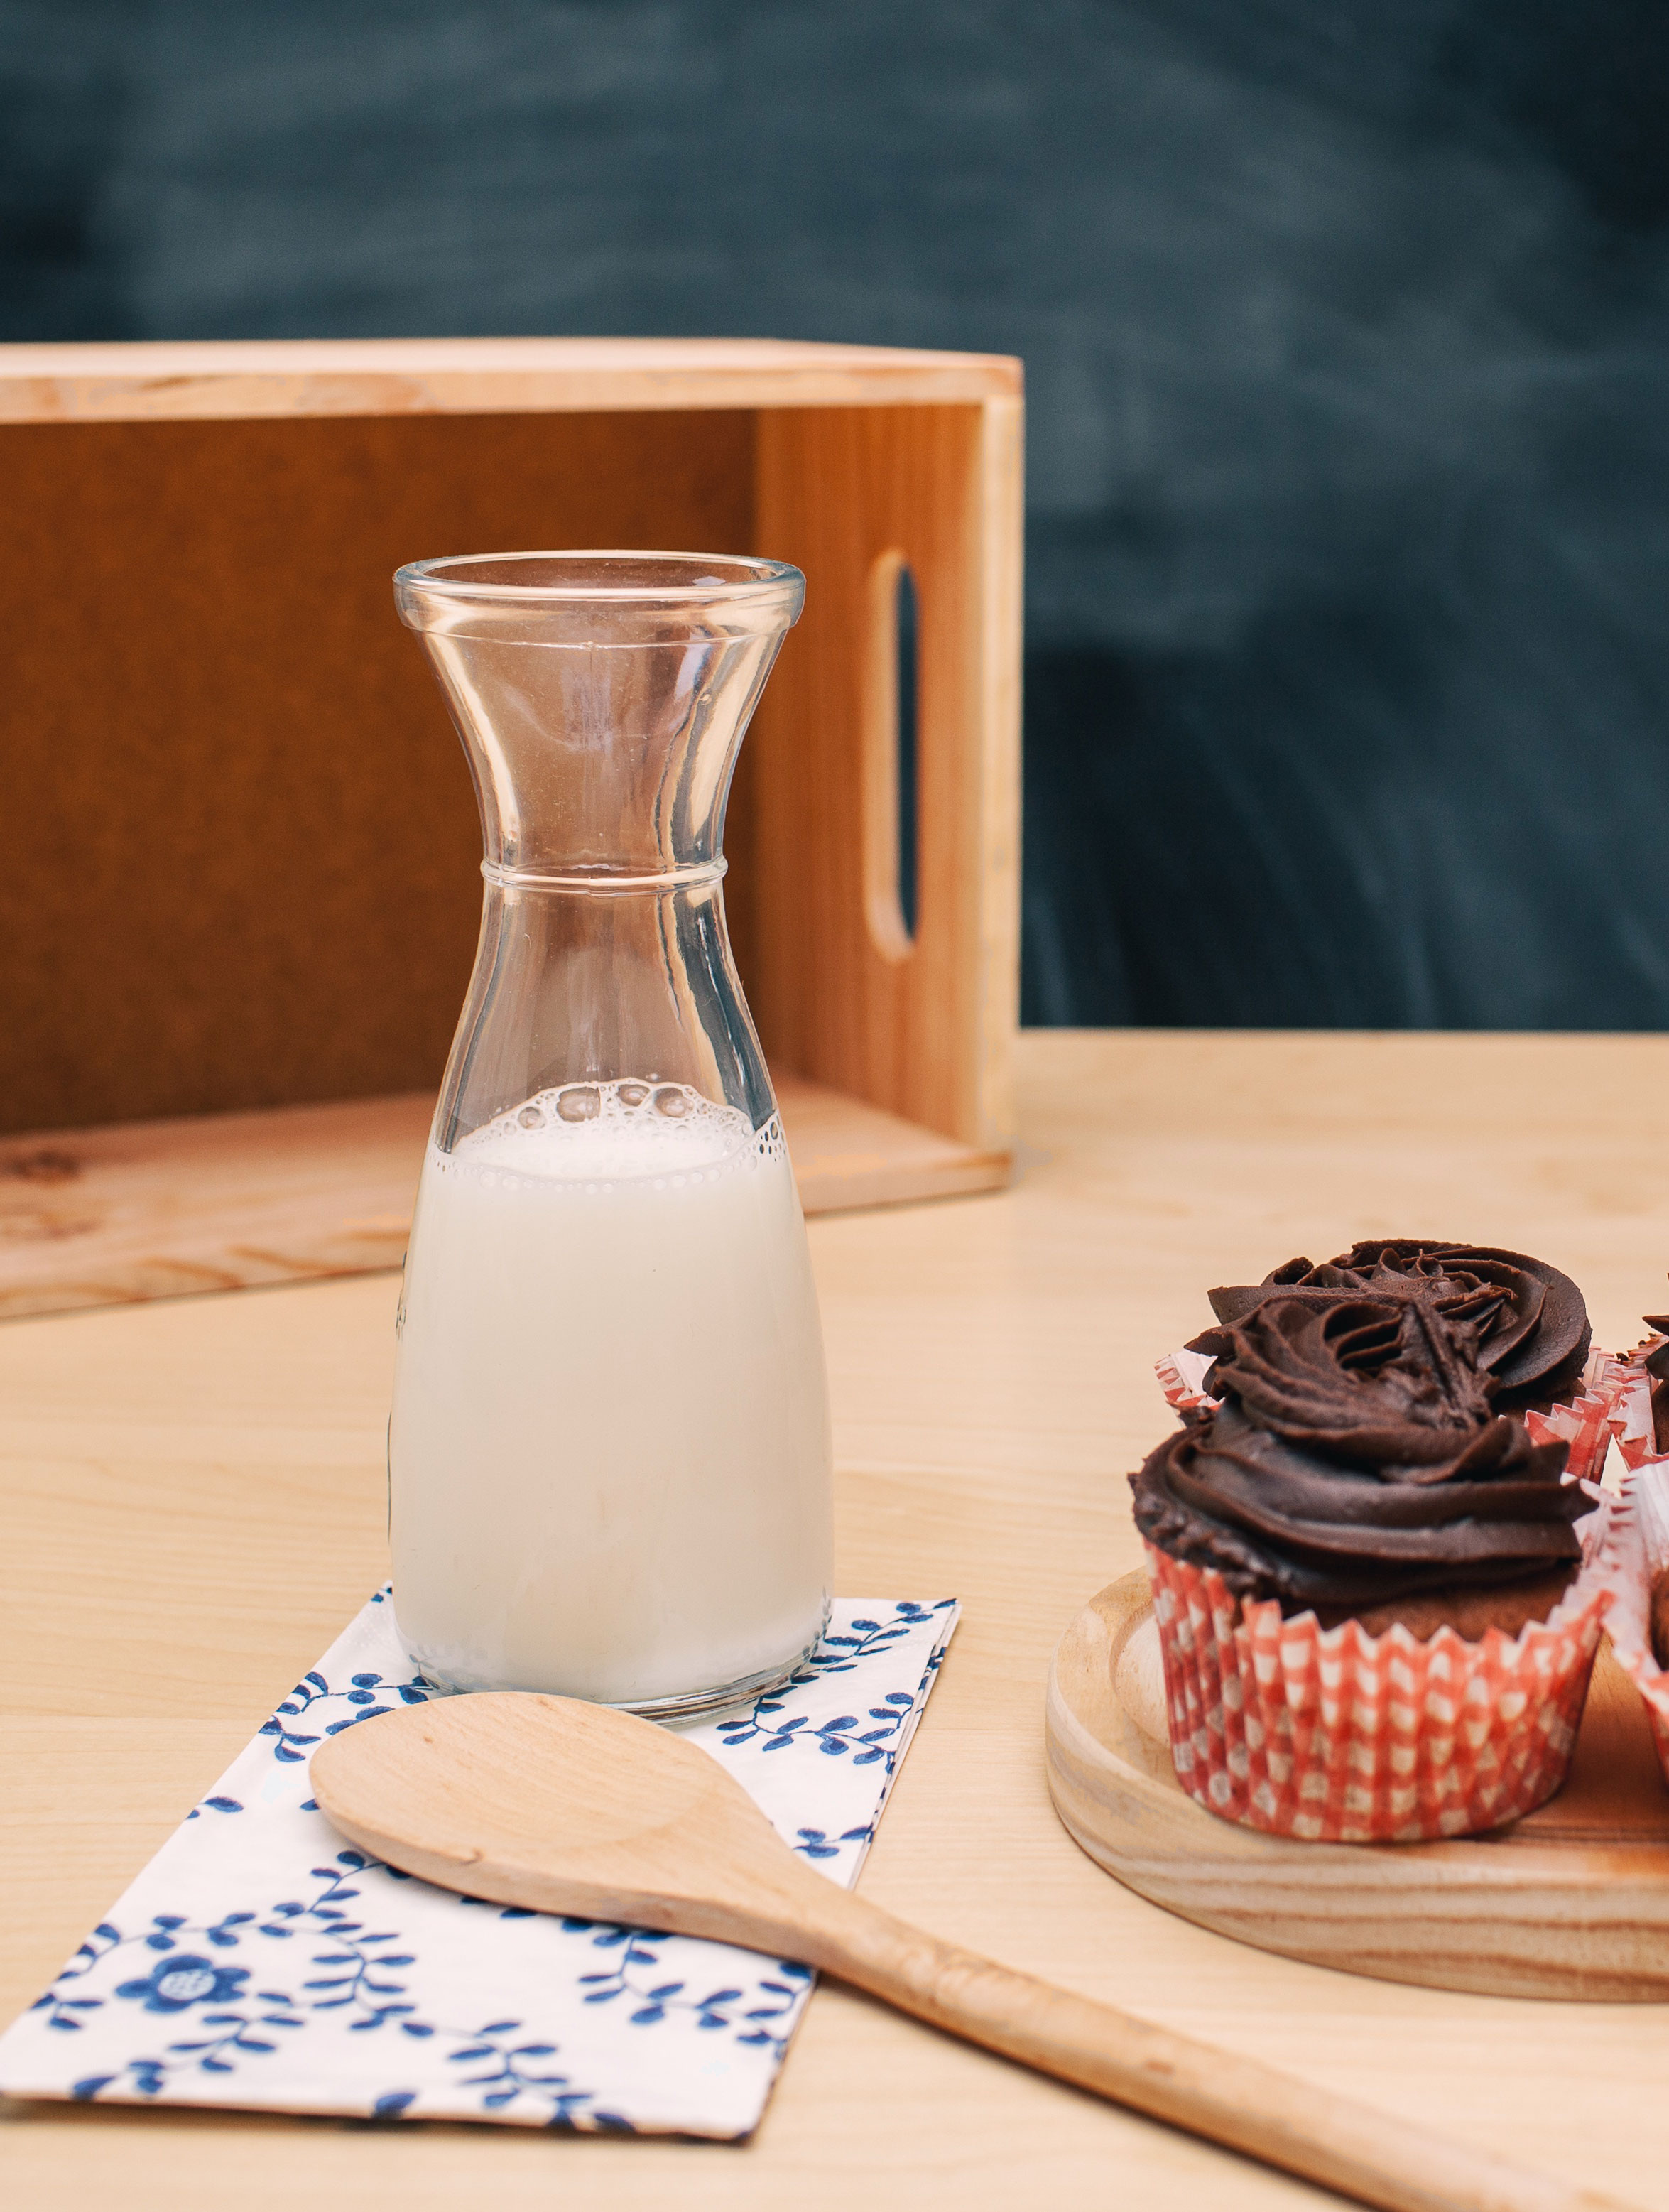 Simply Raw Milk used to make chocolate cup cakes